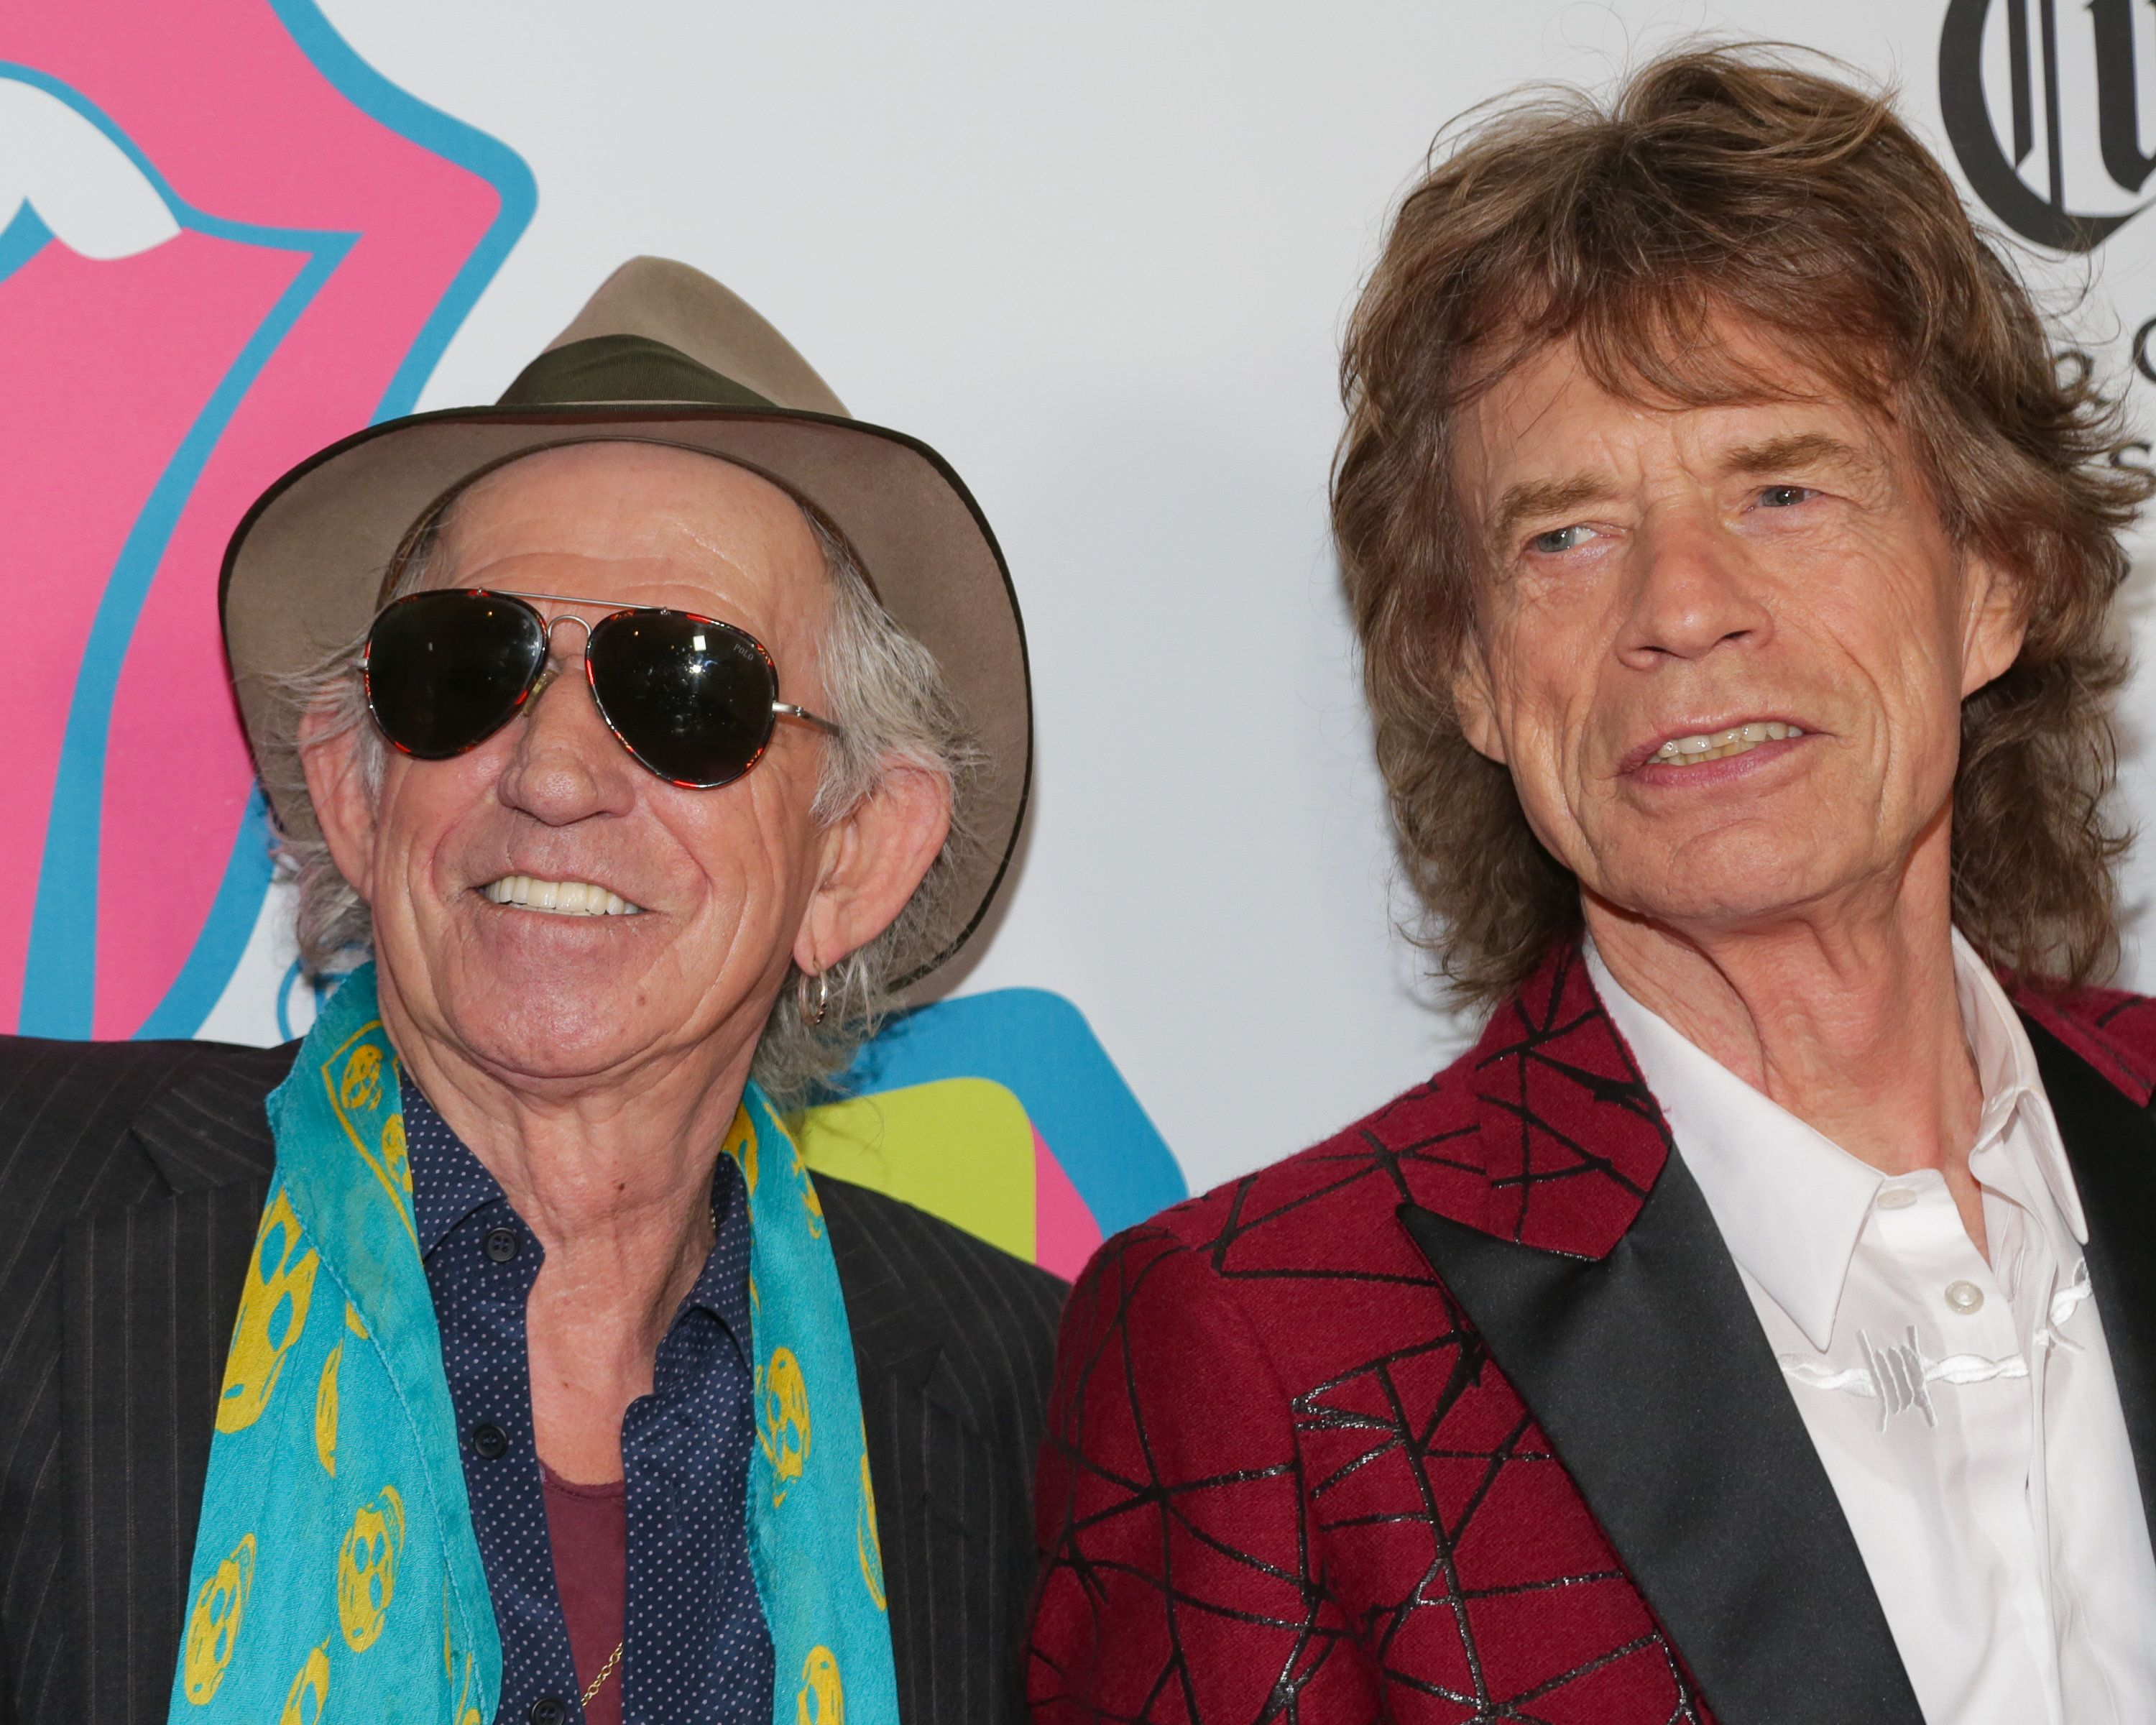 Keith Richards Apologises To Mick Jagger For Claiming He Should Get